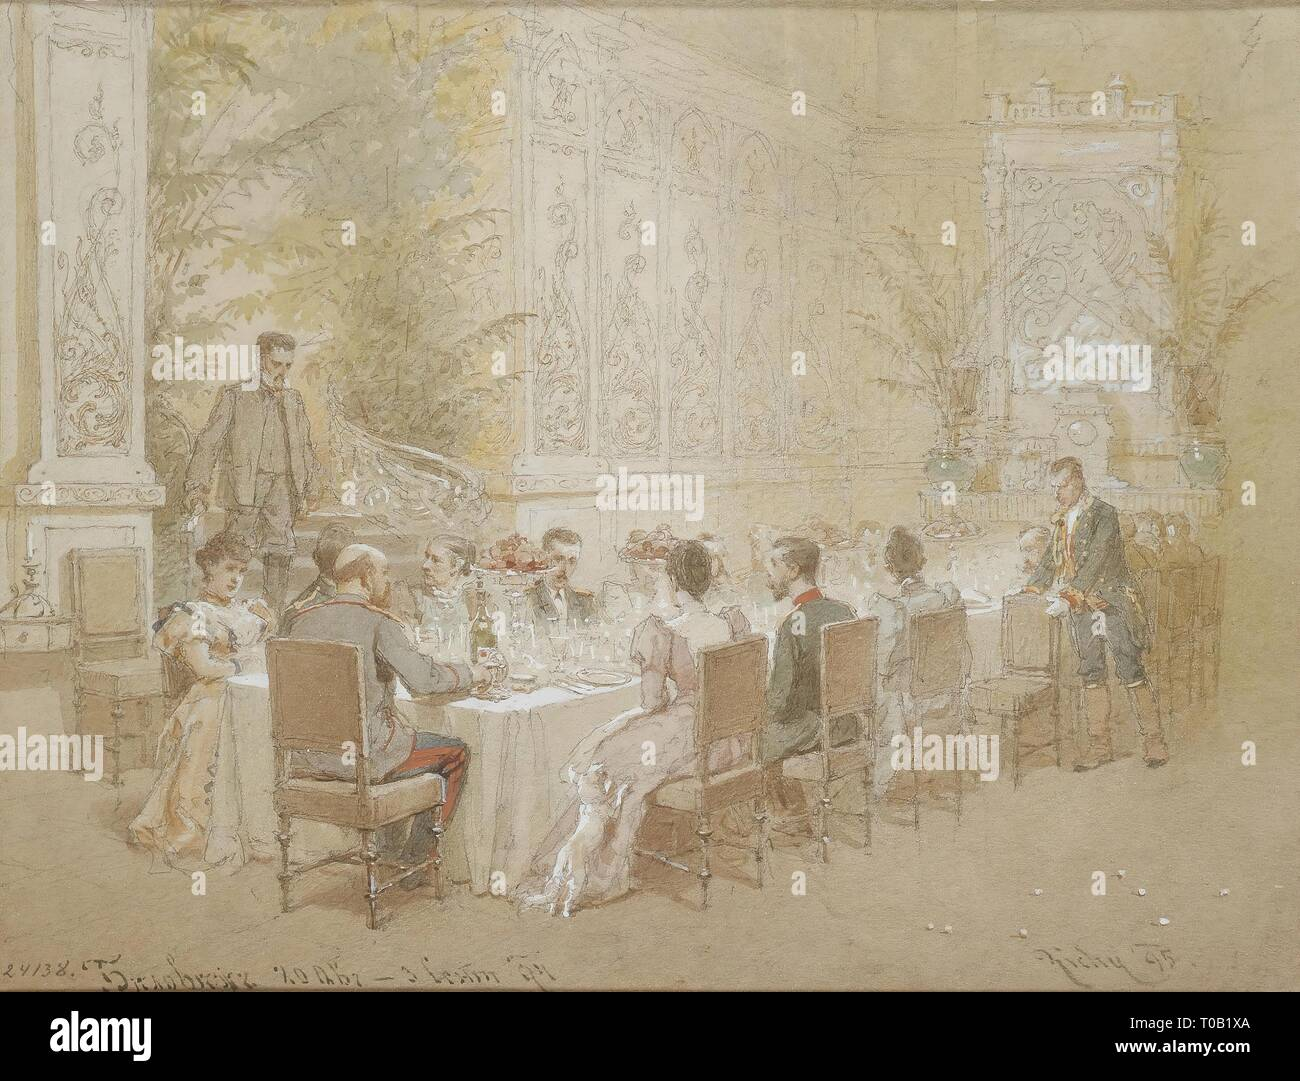 """'""""Dinner at the Belovezh Hunting Lodge in Late August 1894""""'. Series """"The Royal Hunt of Emperor Alexander III in the Belovezh Pushcha, 20th August - 3rd September 1894"""". Russia, 1895. Dimensions: 23,5x30,5 cm. Museum: State Hermitage, St. Petersburg. Author: MIHALY VON ZICHY. Stock Photo"""